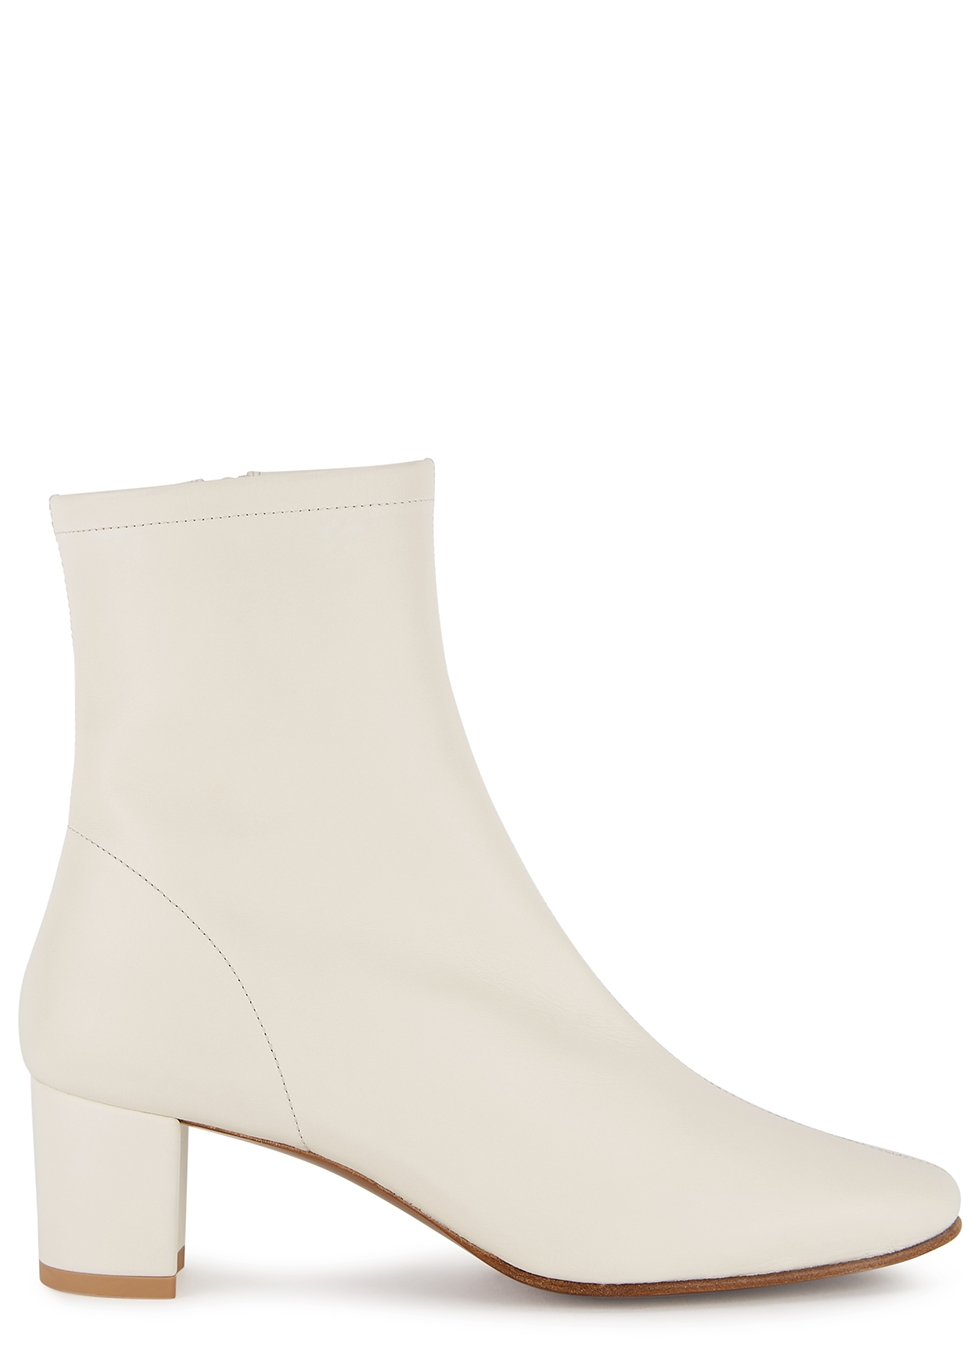 BY FAR Sofia 65 off-white leather ankle